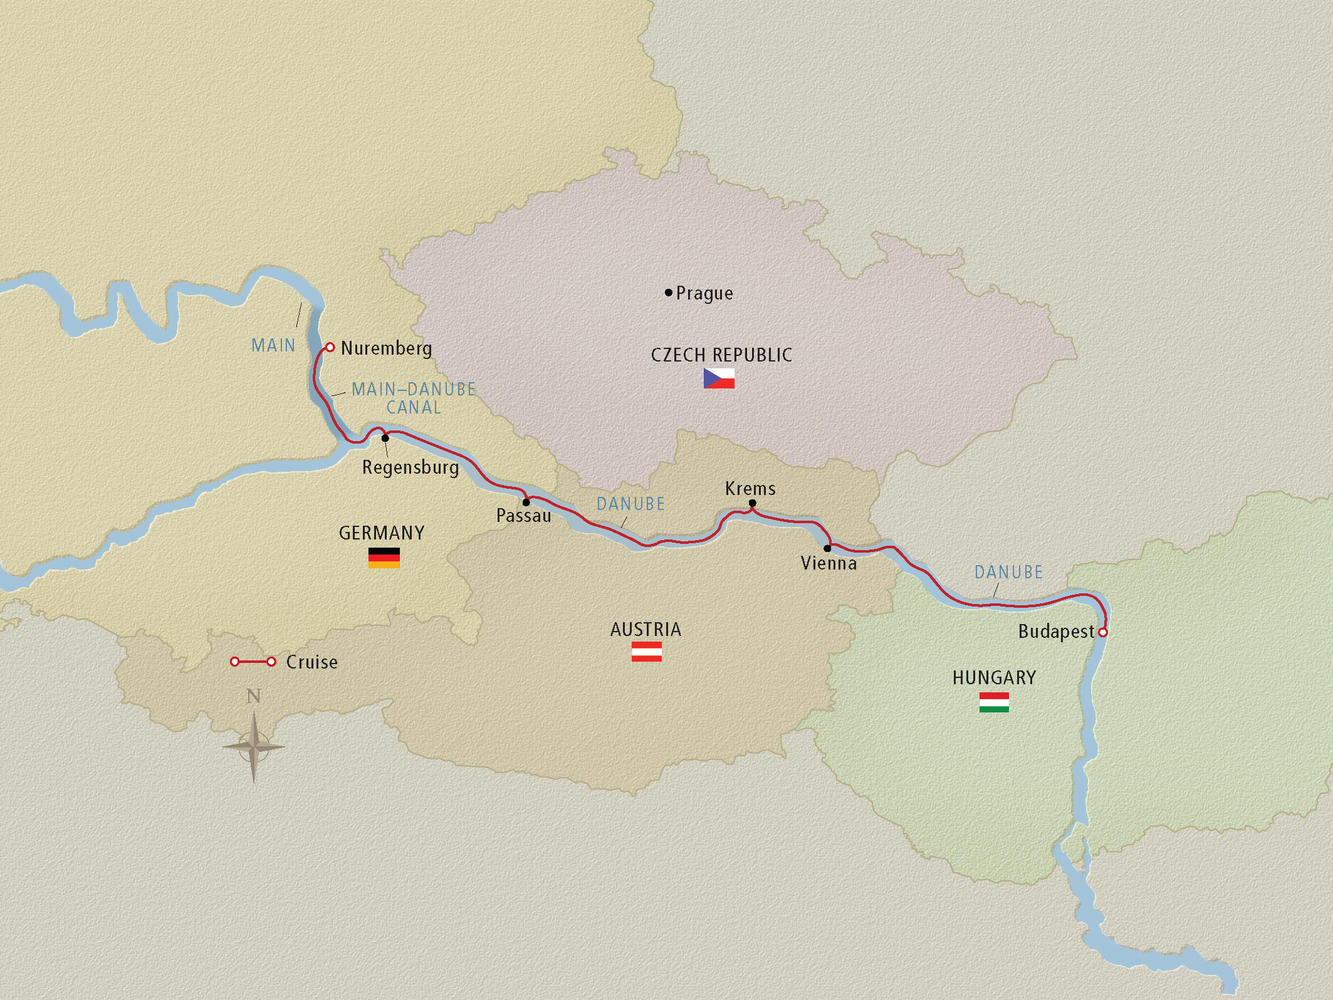 Danube River Cruise Map - Cruise Critic on